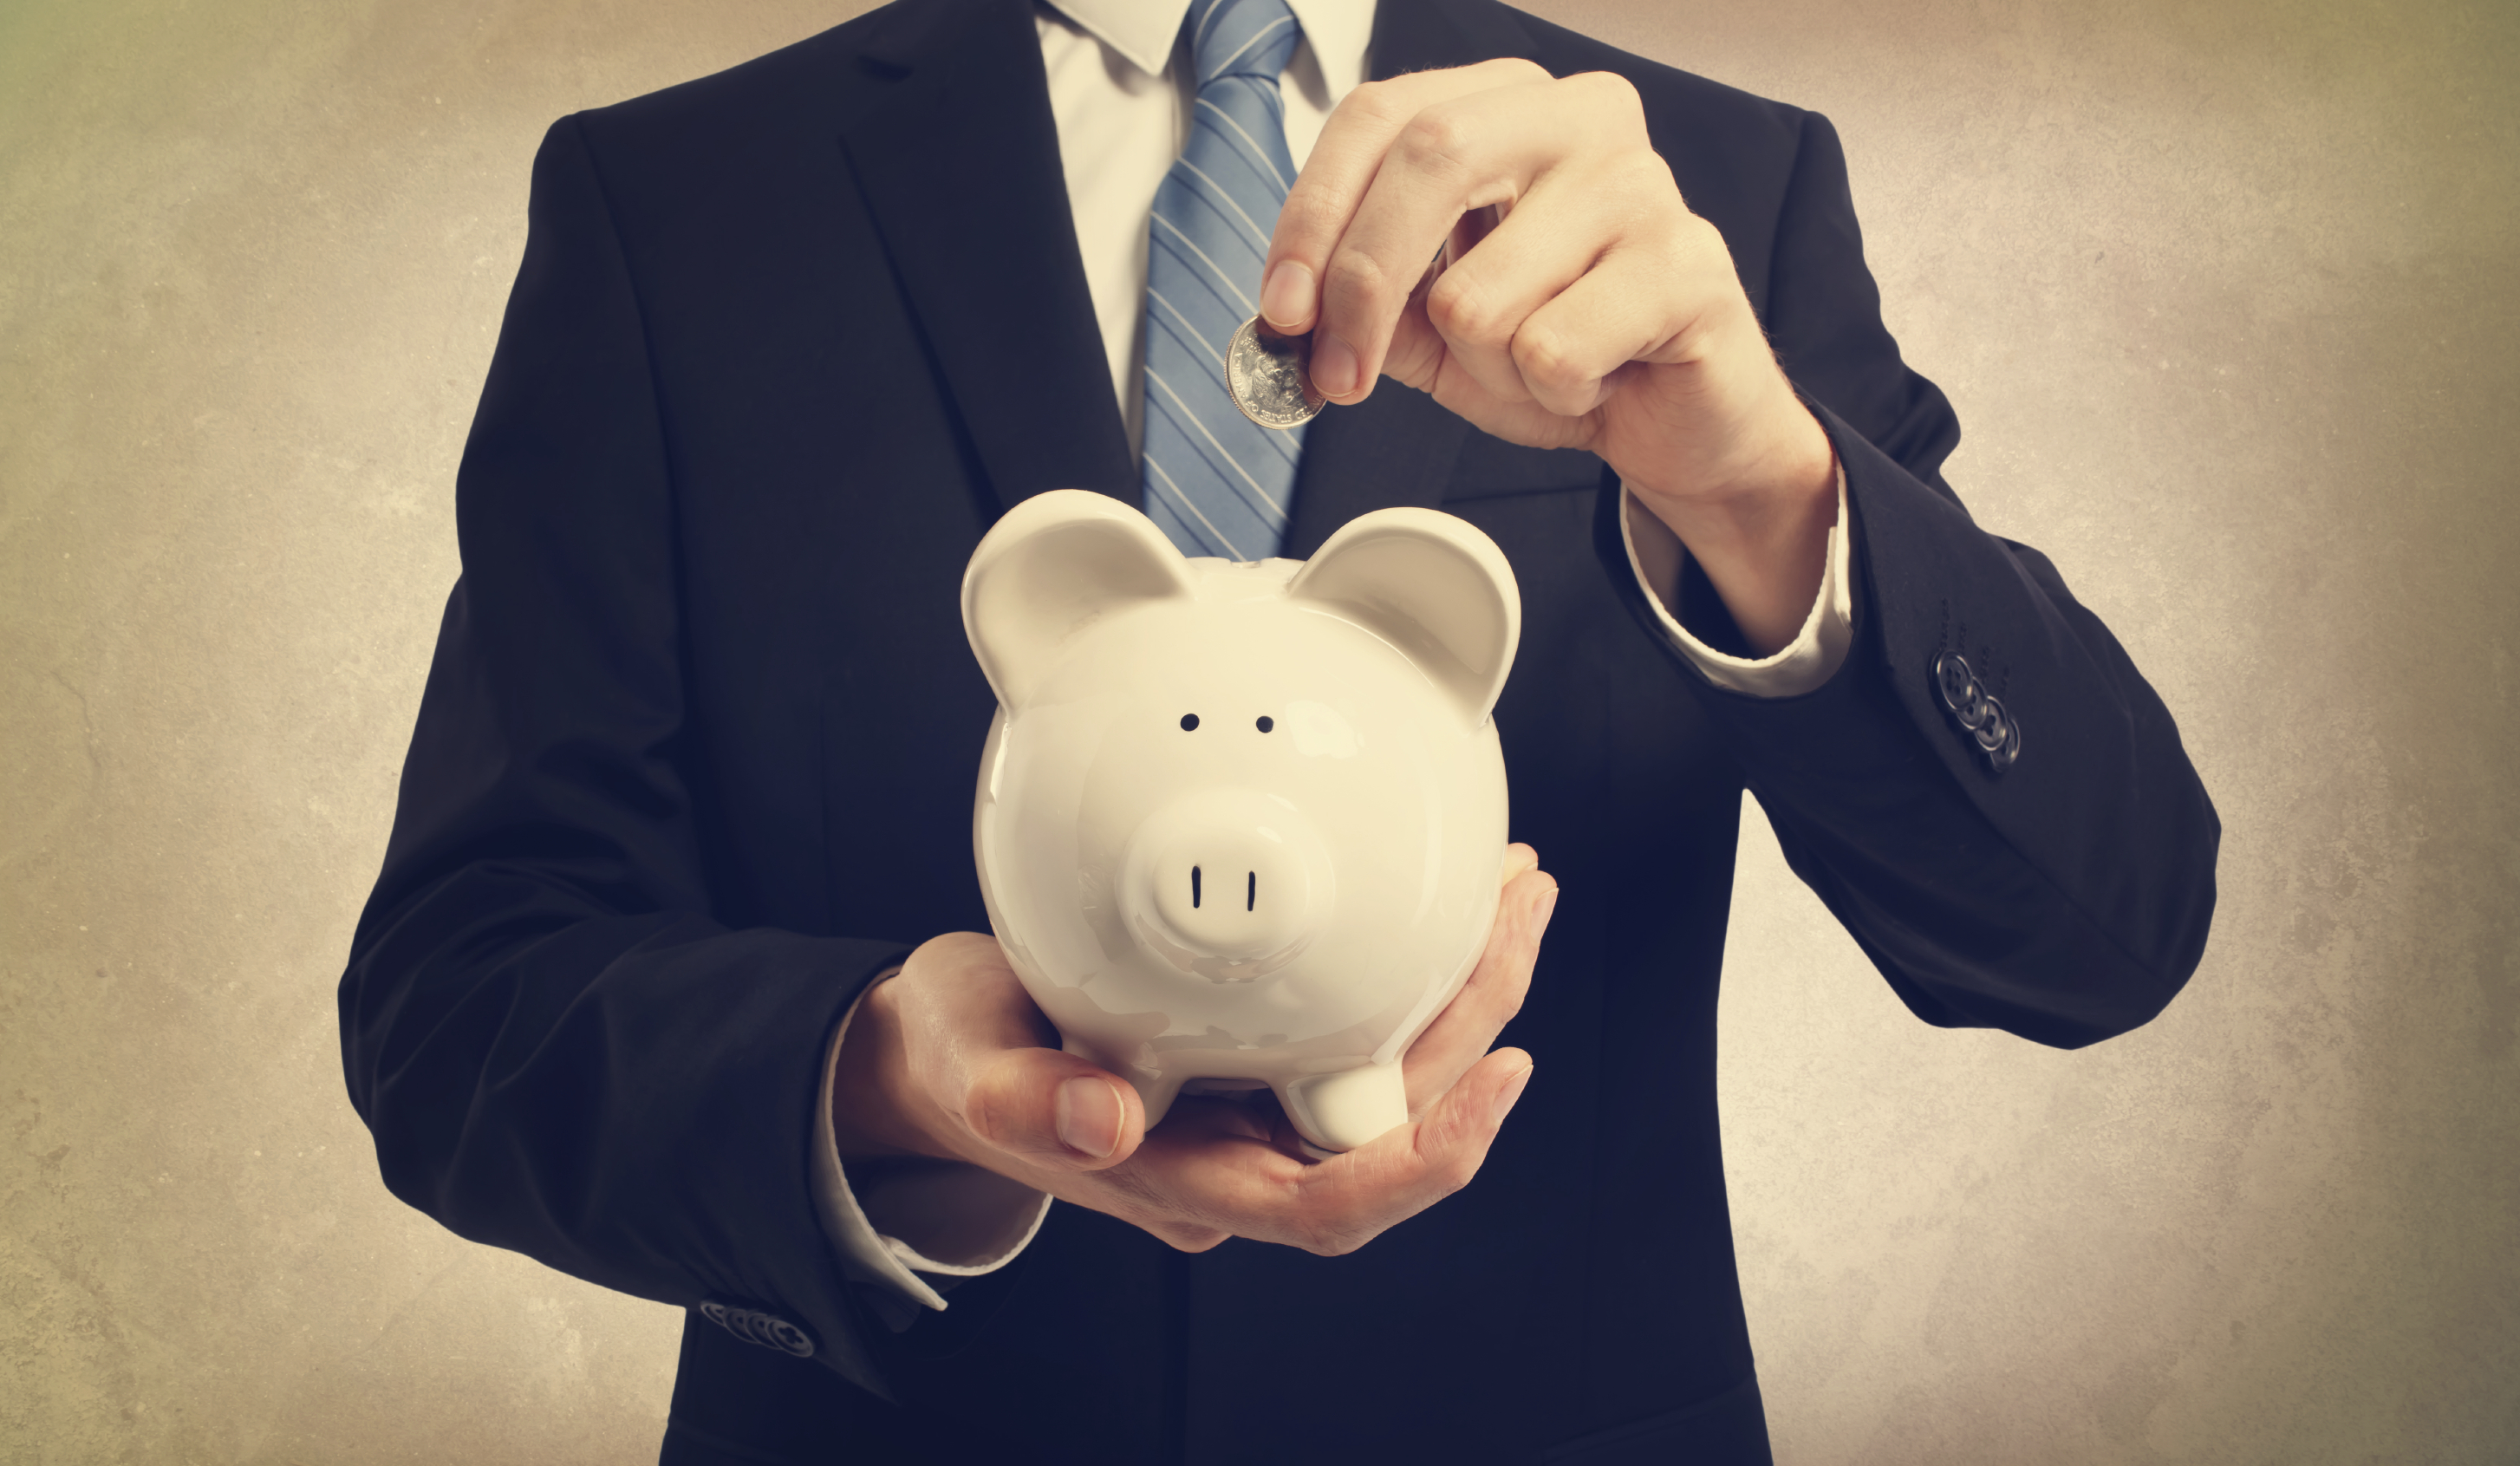 Managed Services Chicago: 4 Managed Services That Save Money